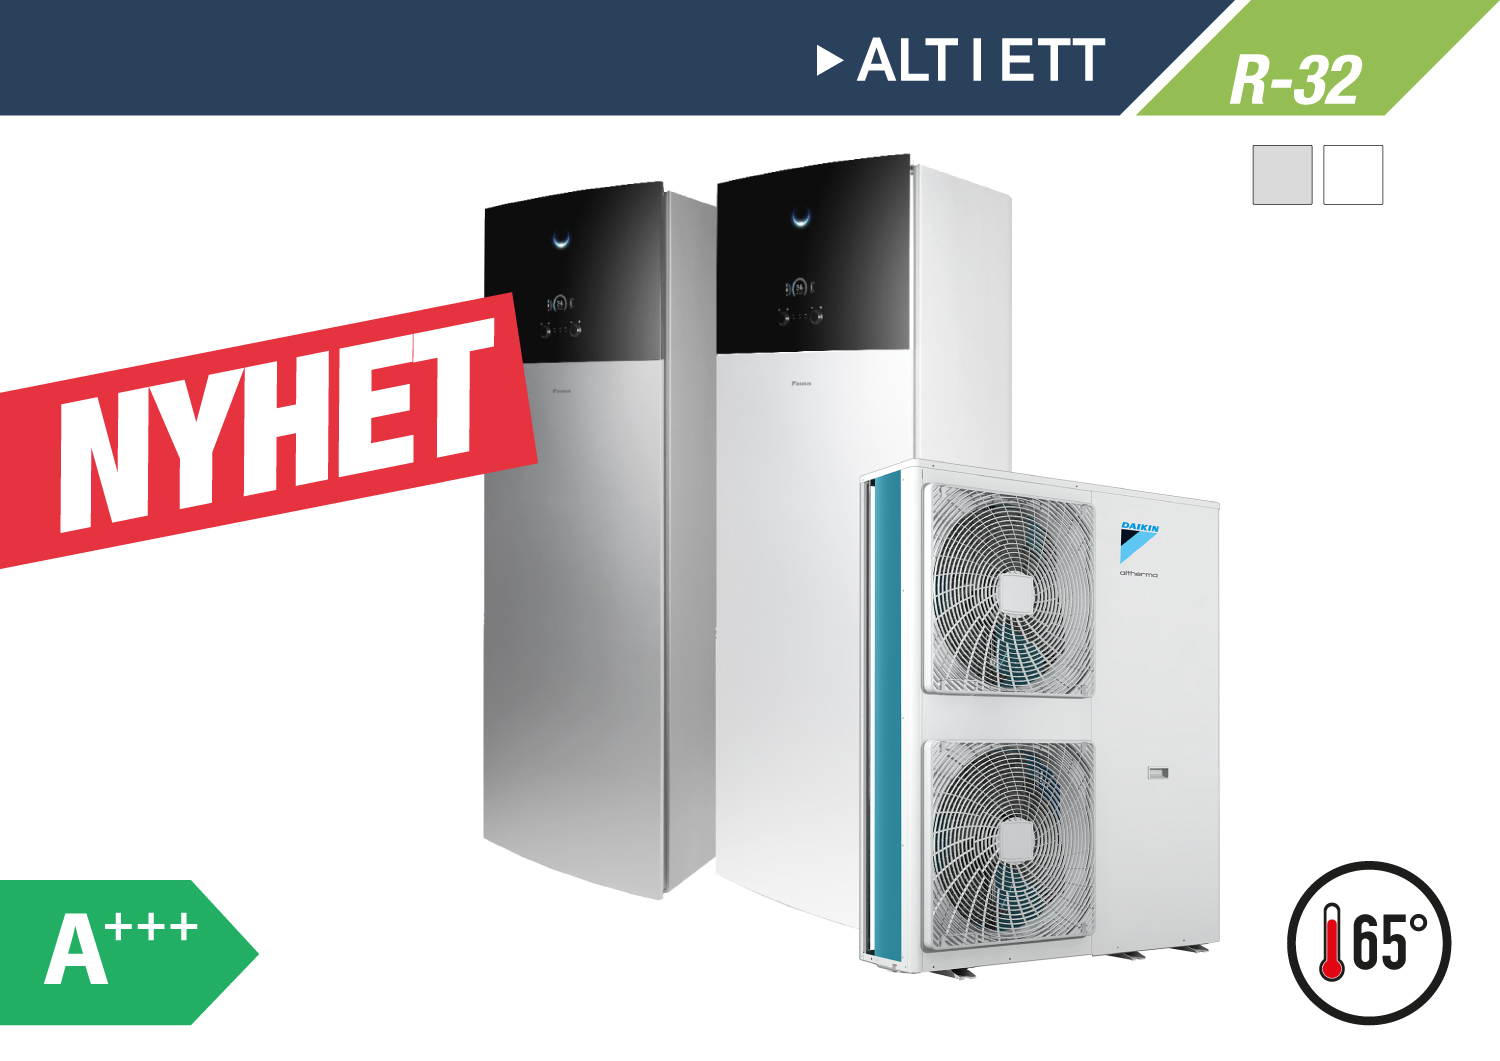 Altherma_3_11-16kW_Gulvmodell_Produkt_1500x1061px_03